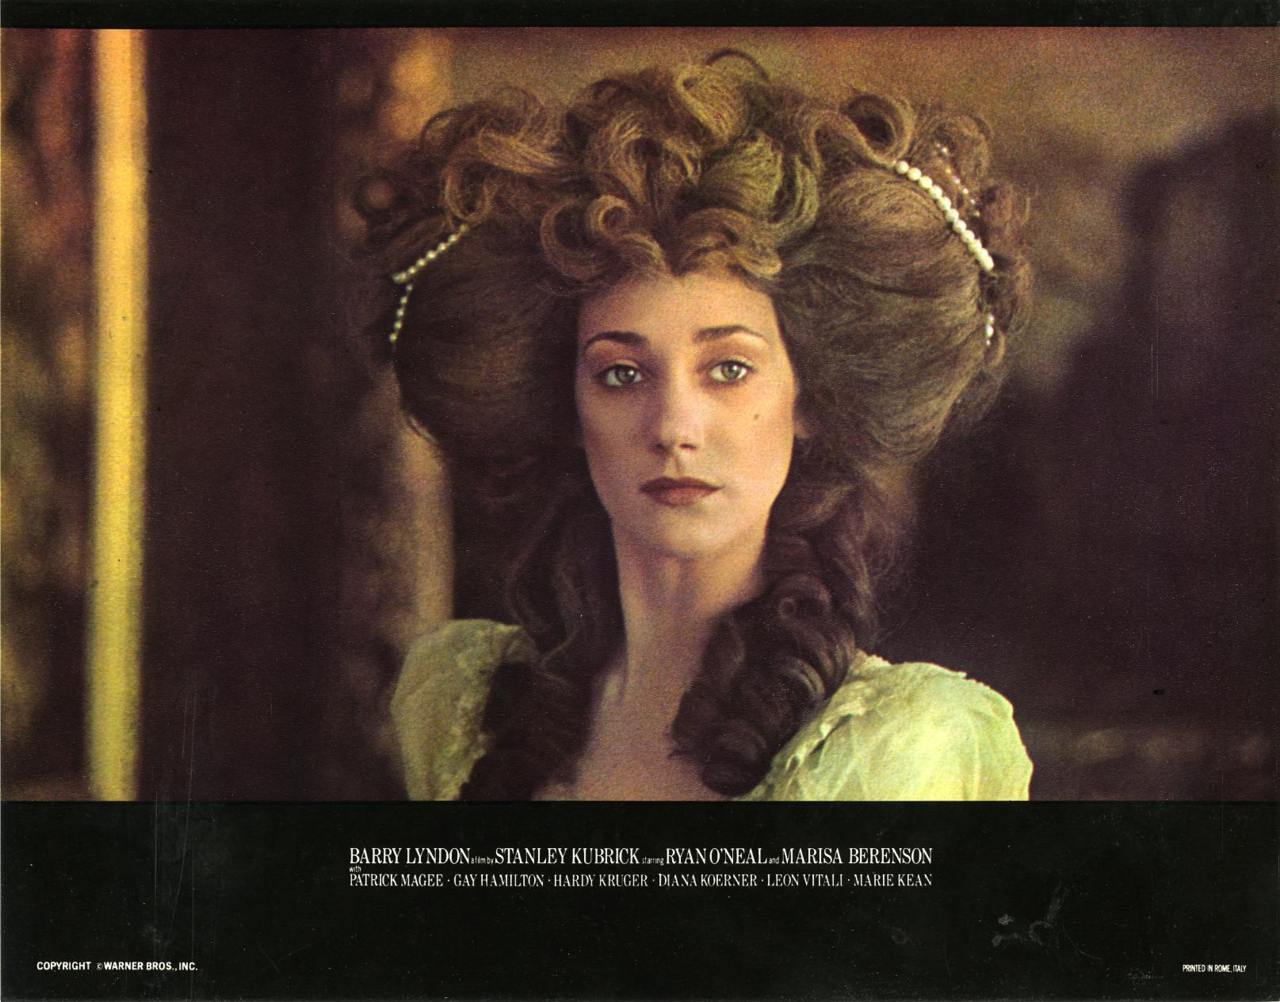 Barry Lyndon lobby card b